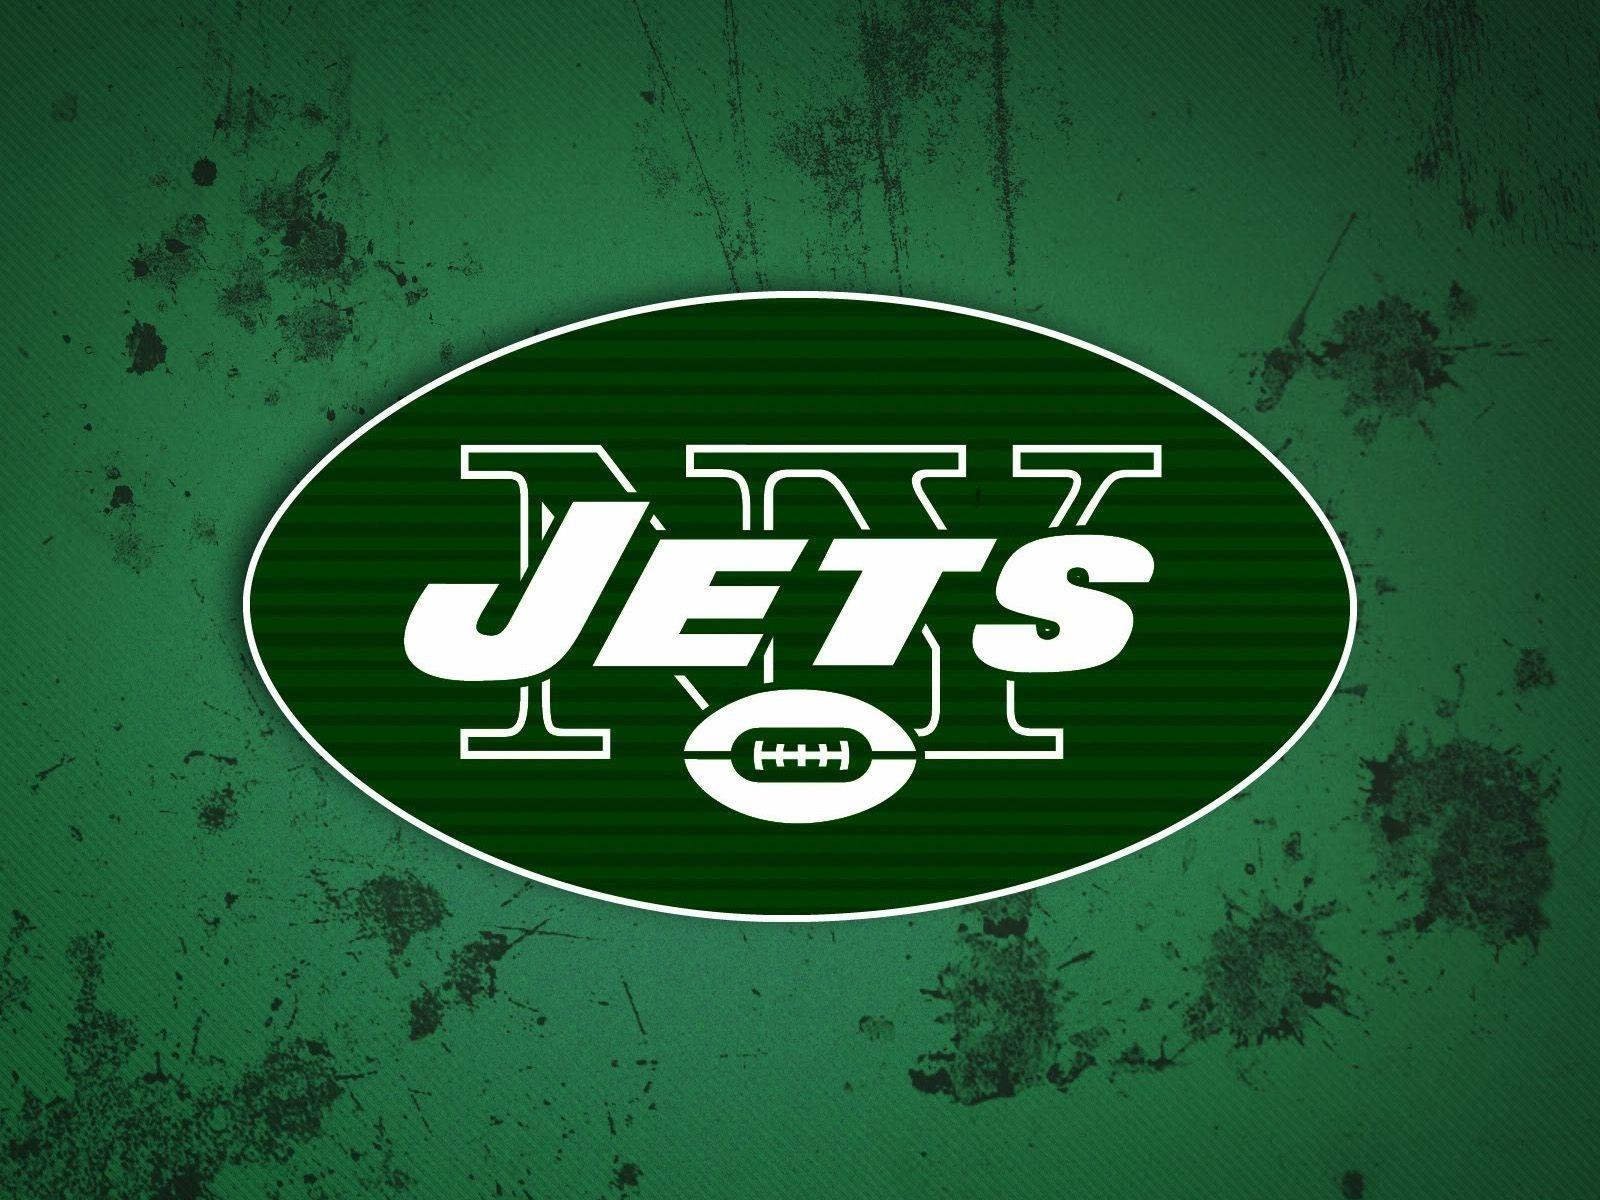 new york jets wallpapers - wallpaper cave